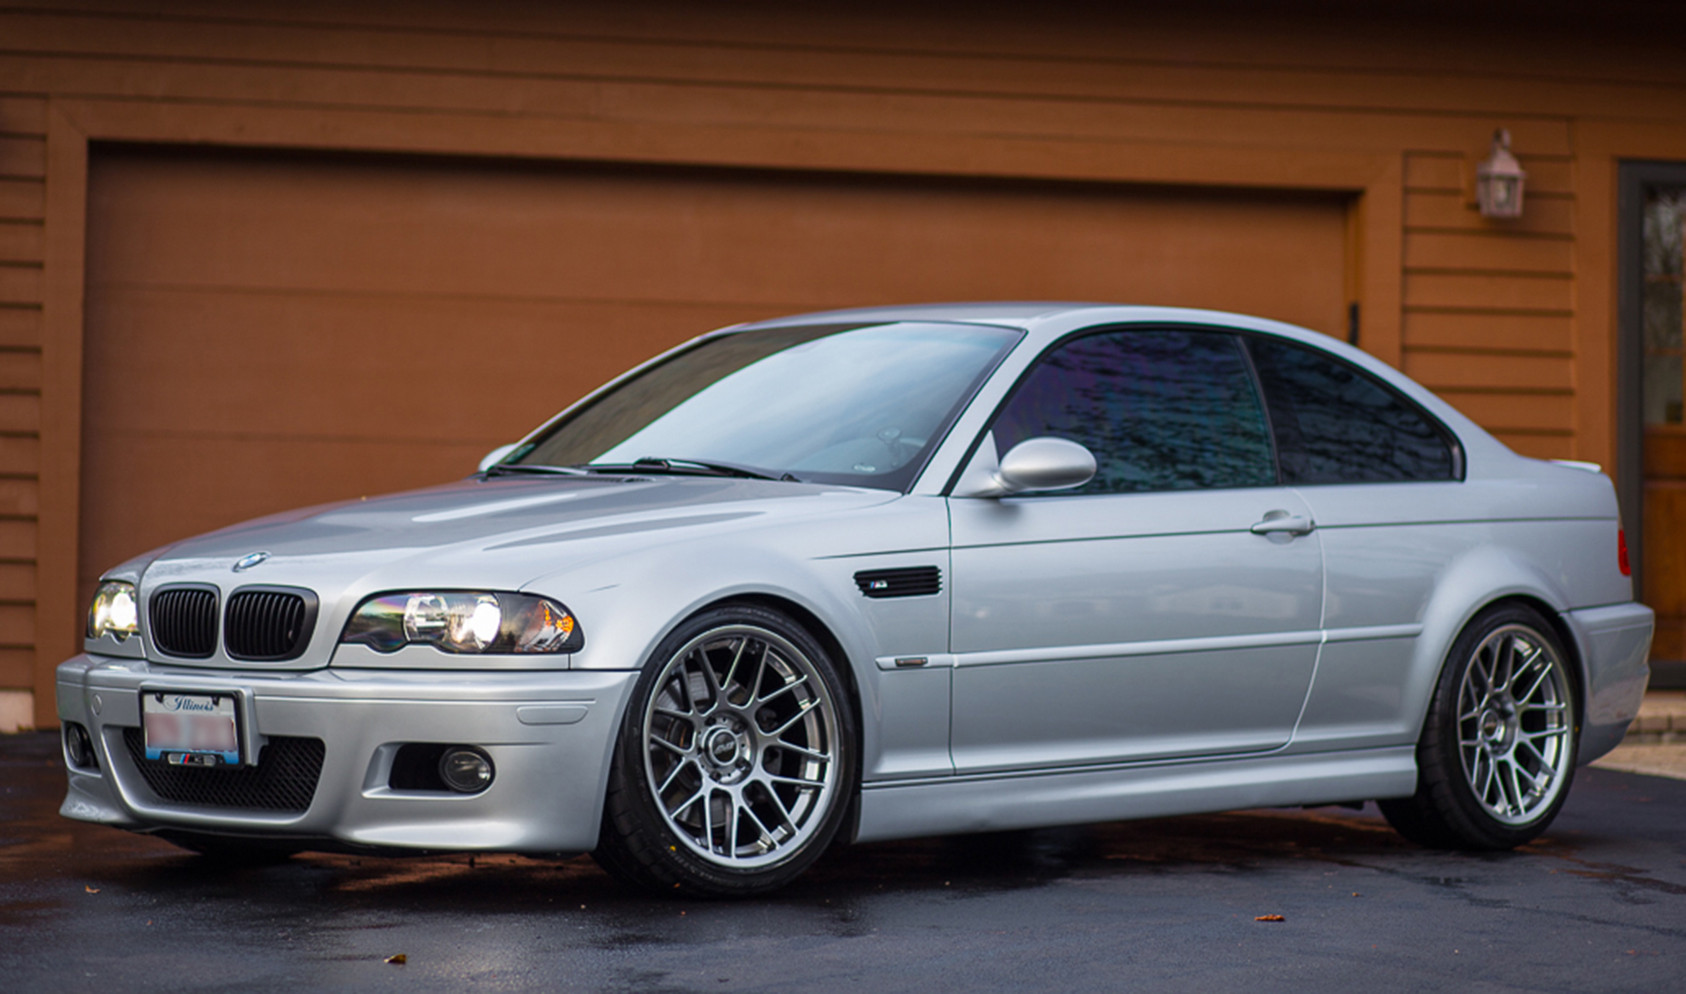 "E46 M3<br />Wheels: Hyper Black ARC-8 18x9.5"" ET35 front, 18x10"" ET25 rear<br />Tires: Bridgestone Potenza RE760 255/35-18 front, 265/35-18 rear"